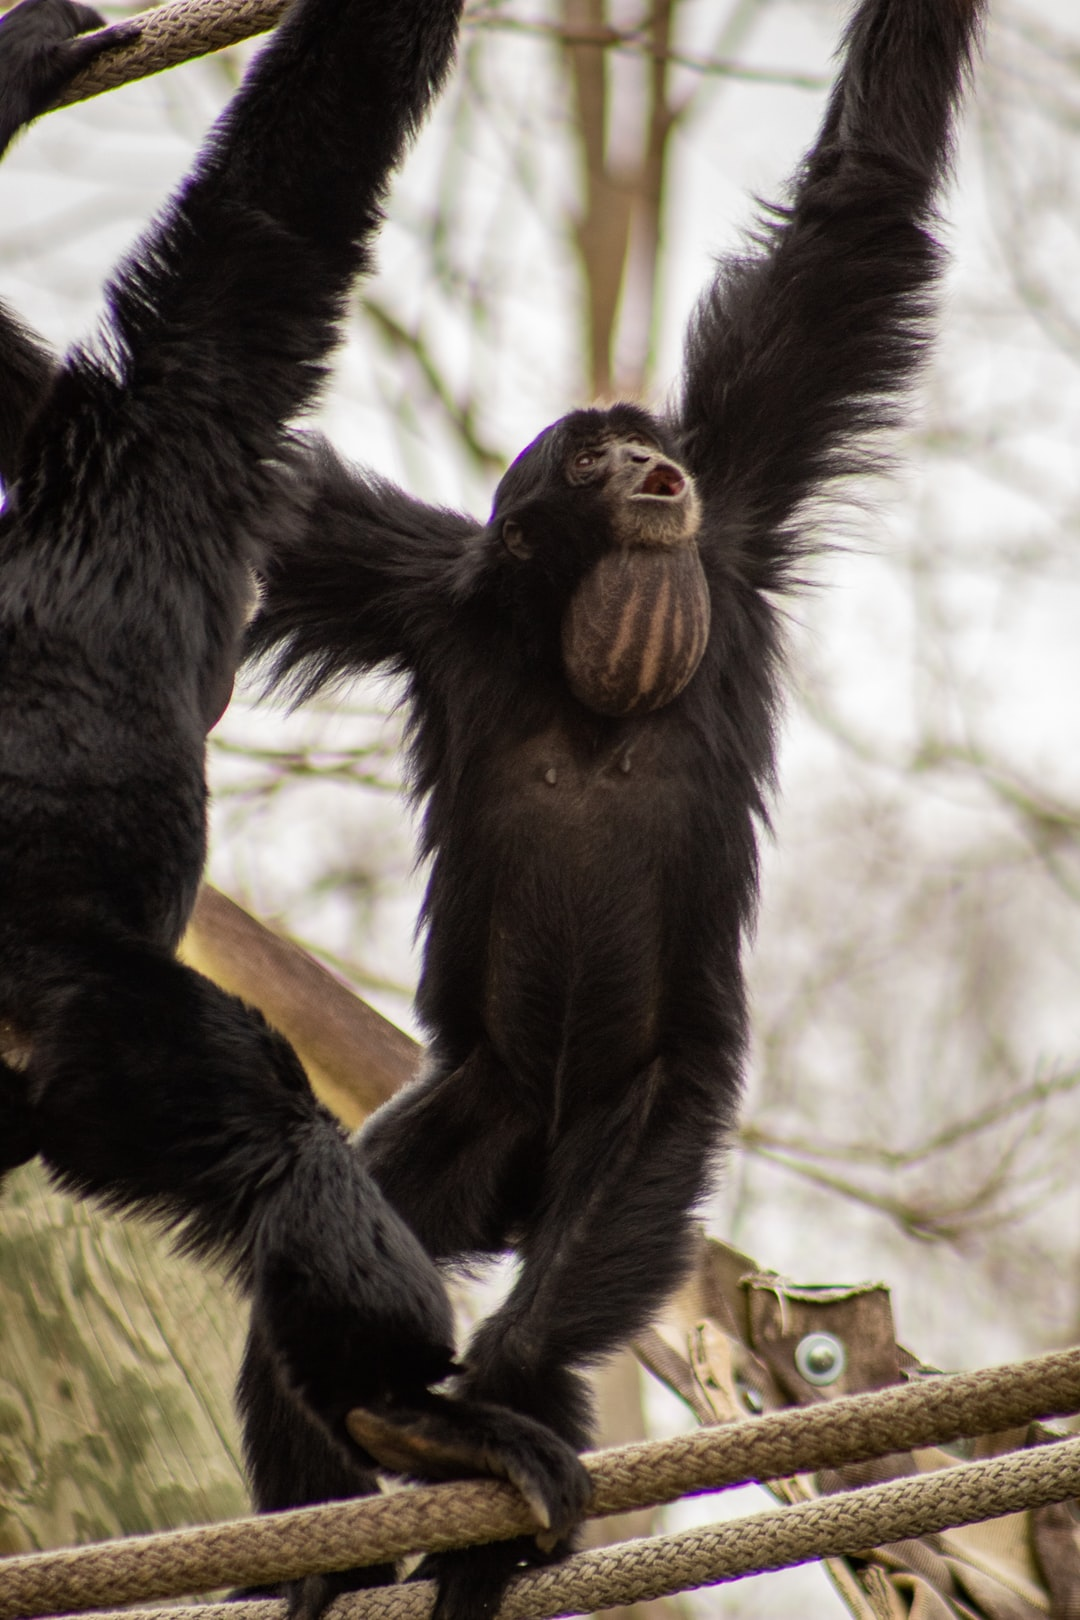 The siamang playing a mating game.